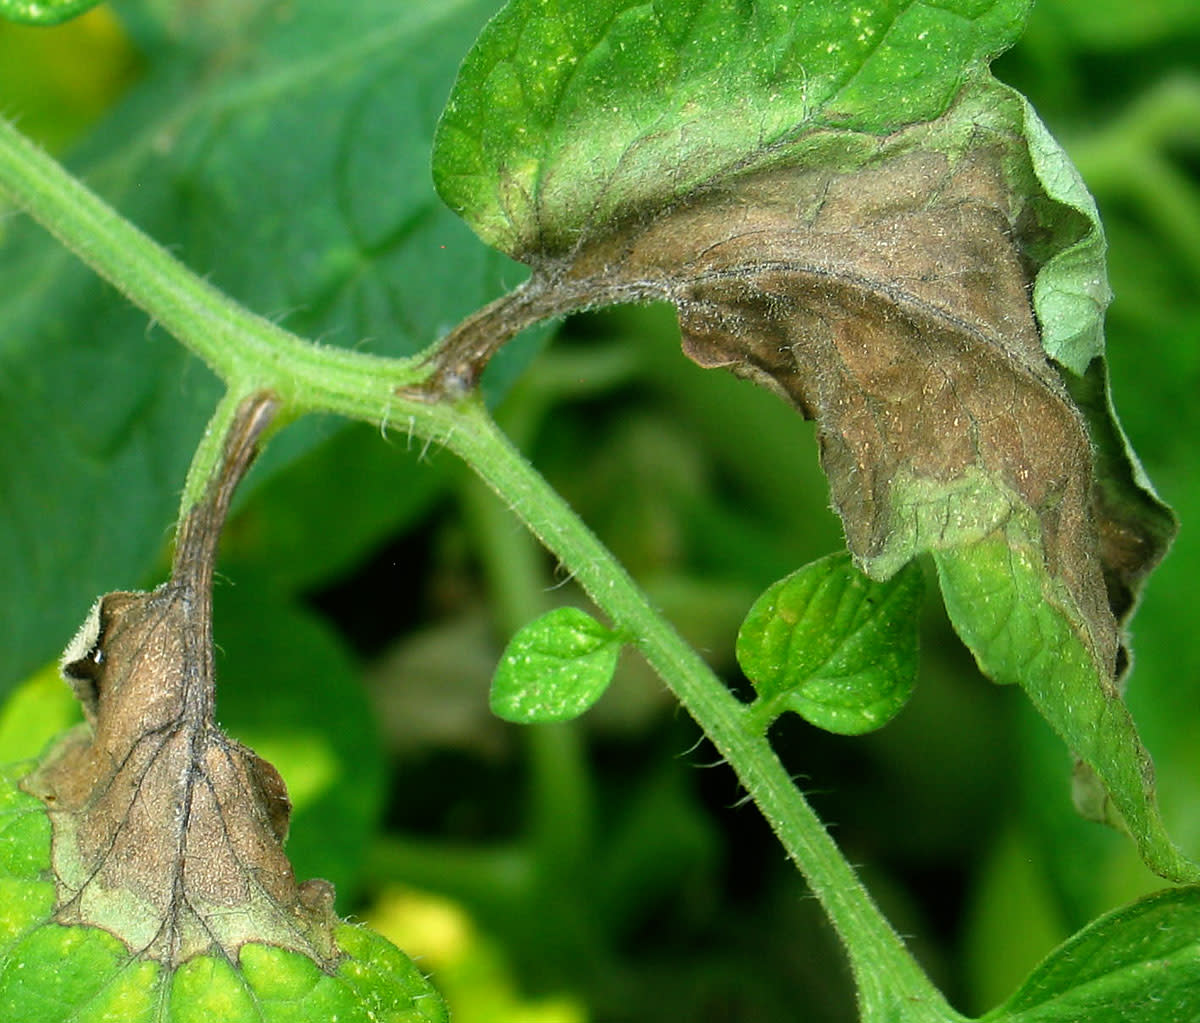 Tomato Diseases: Blight, Charcoal Rot, Target Spot, and Anthracnose